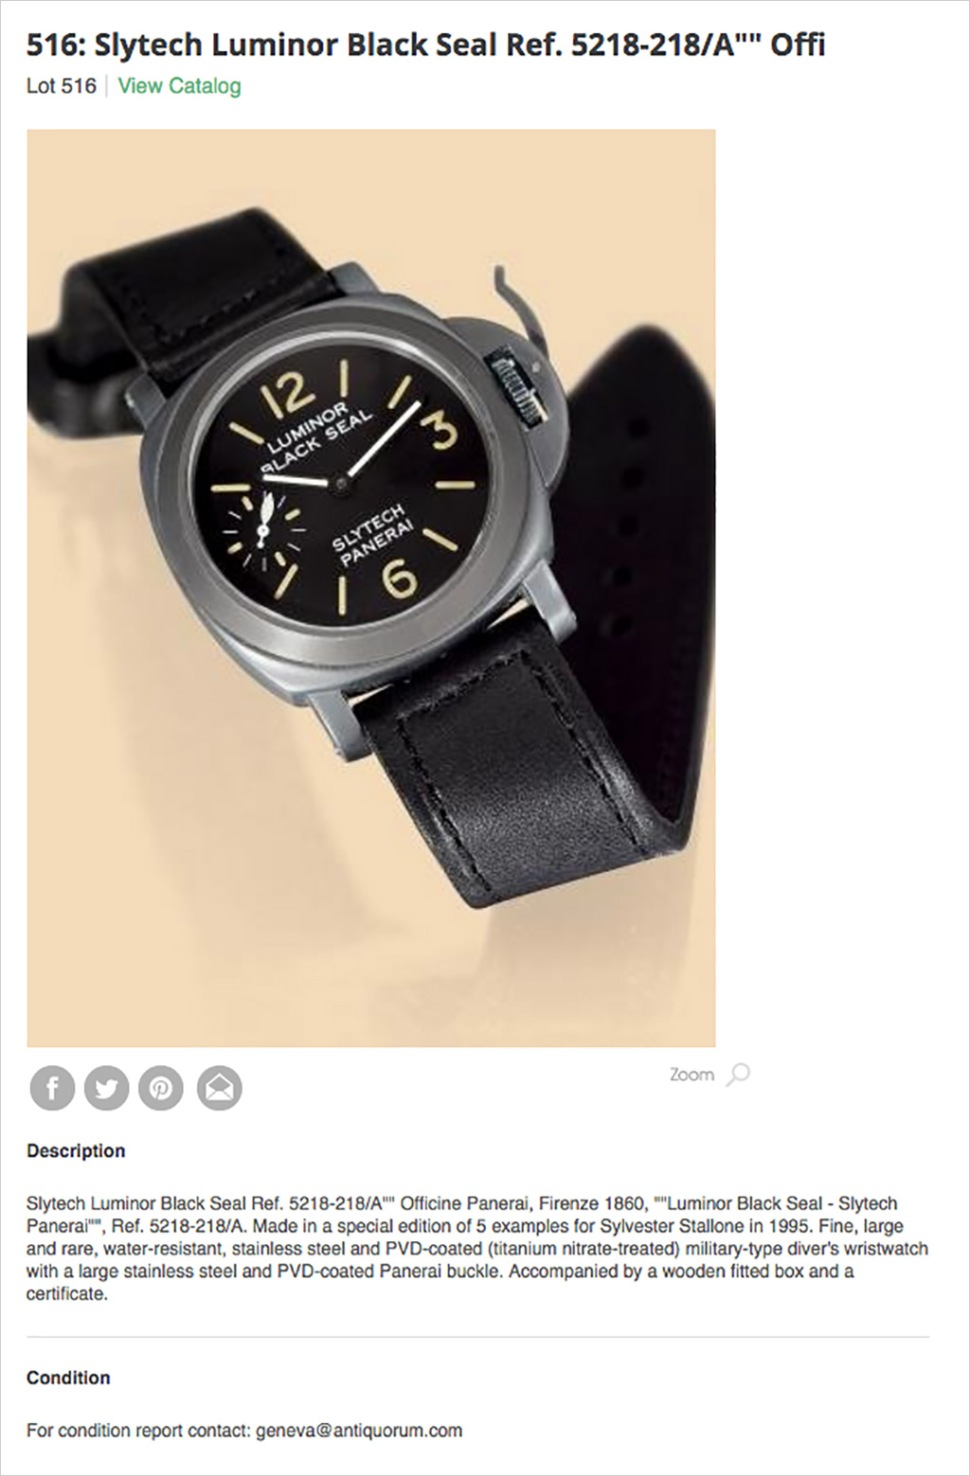 190902-panerai-5218-218-rinaldi-fake-antiquorum-2007-listing